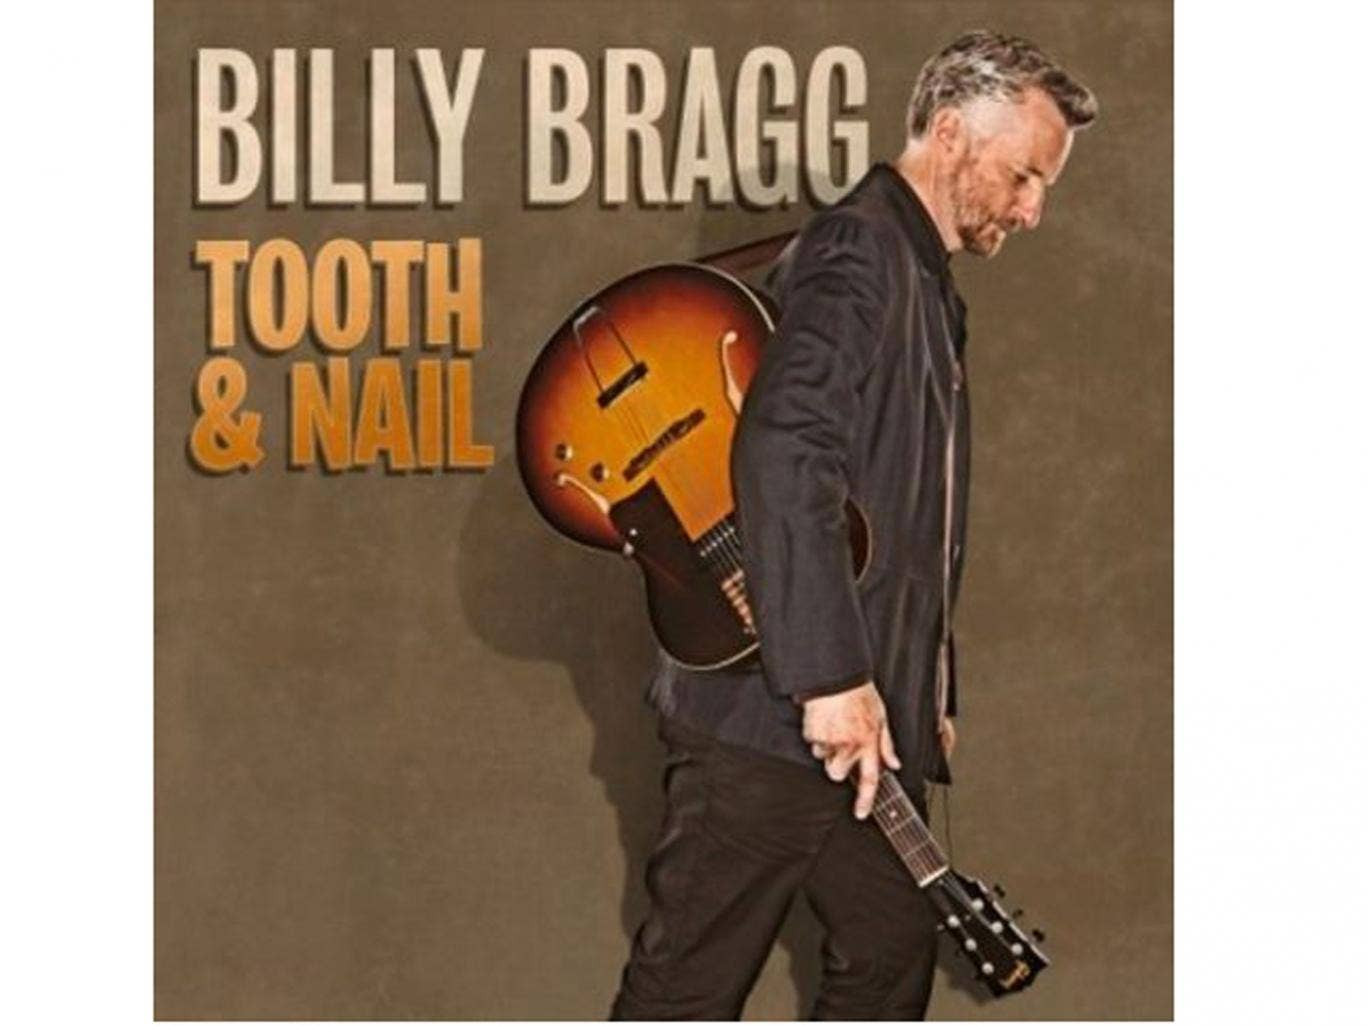 Billy Bragg, Tooth & Nail (Cooking Vinyl)